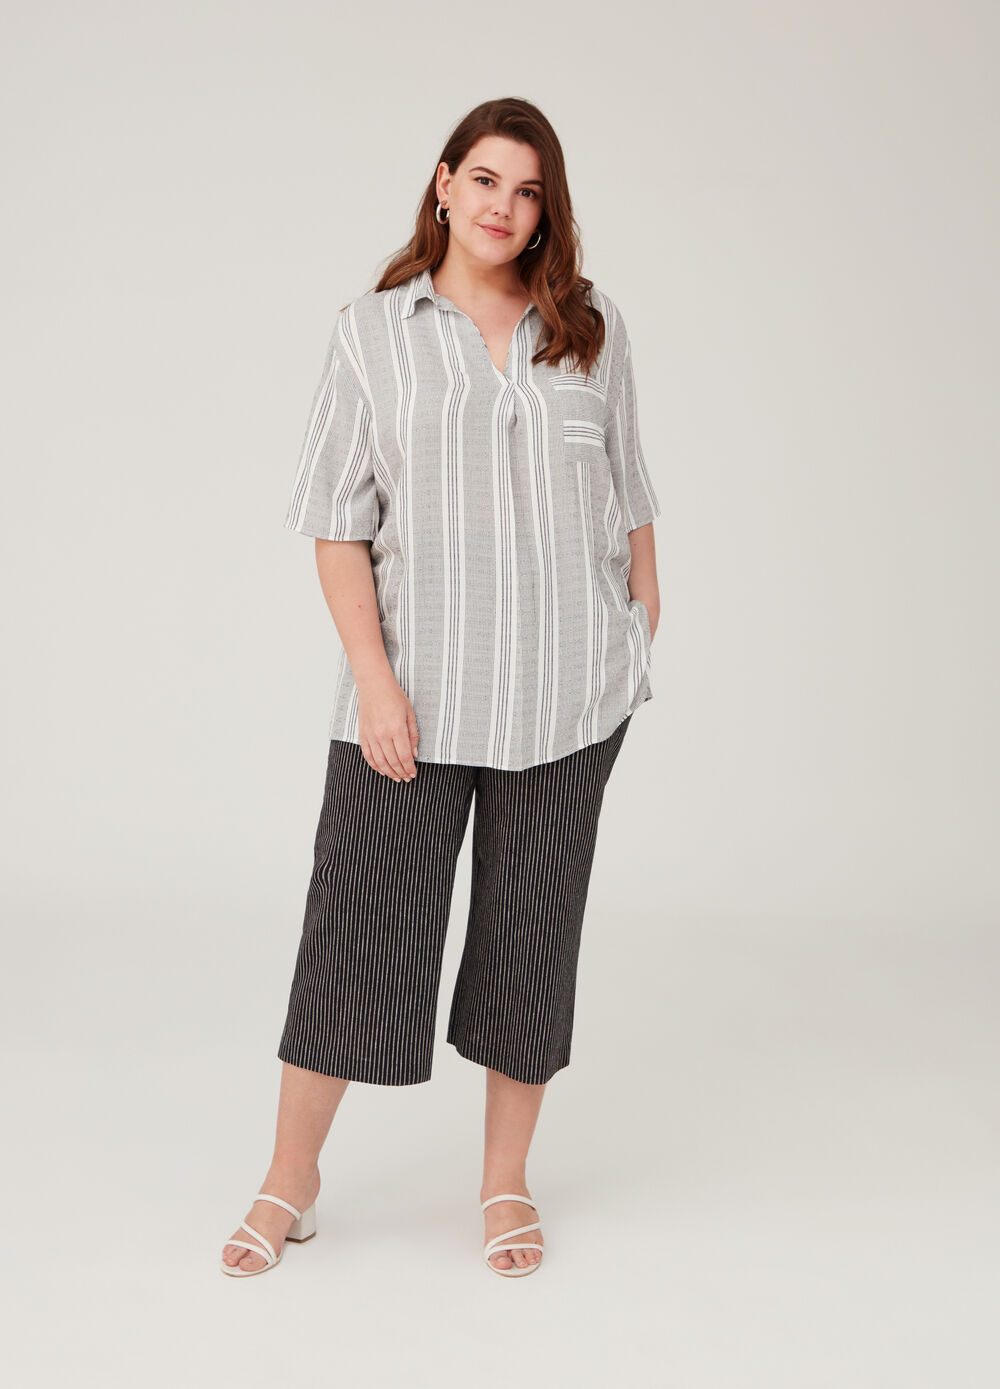 Curvy shirt with V opening and stripes